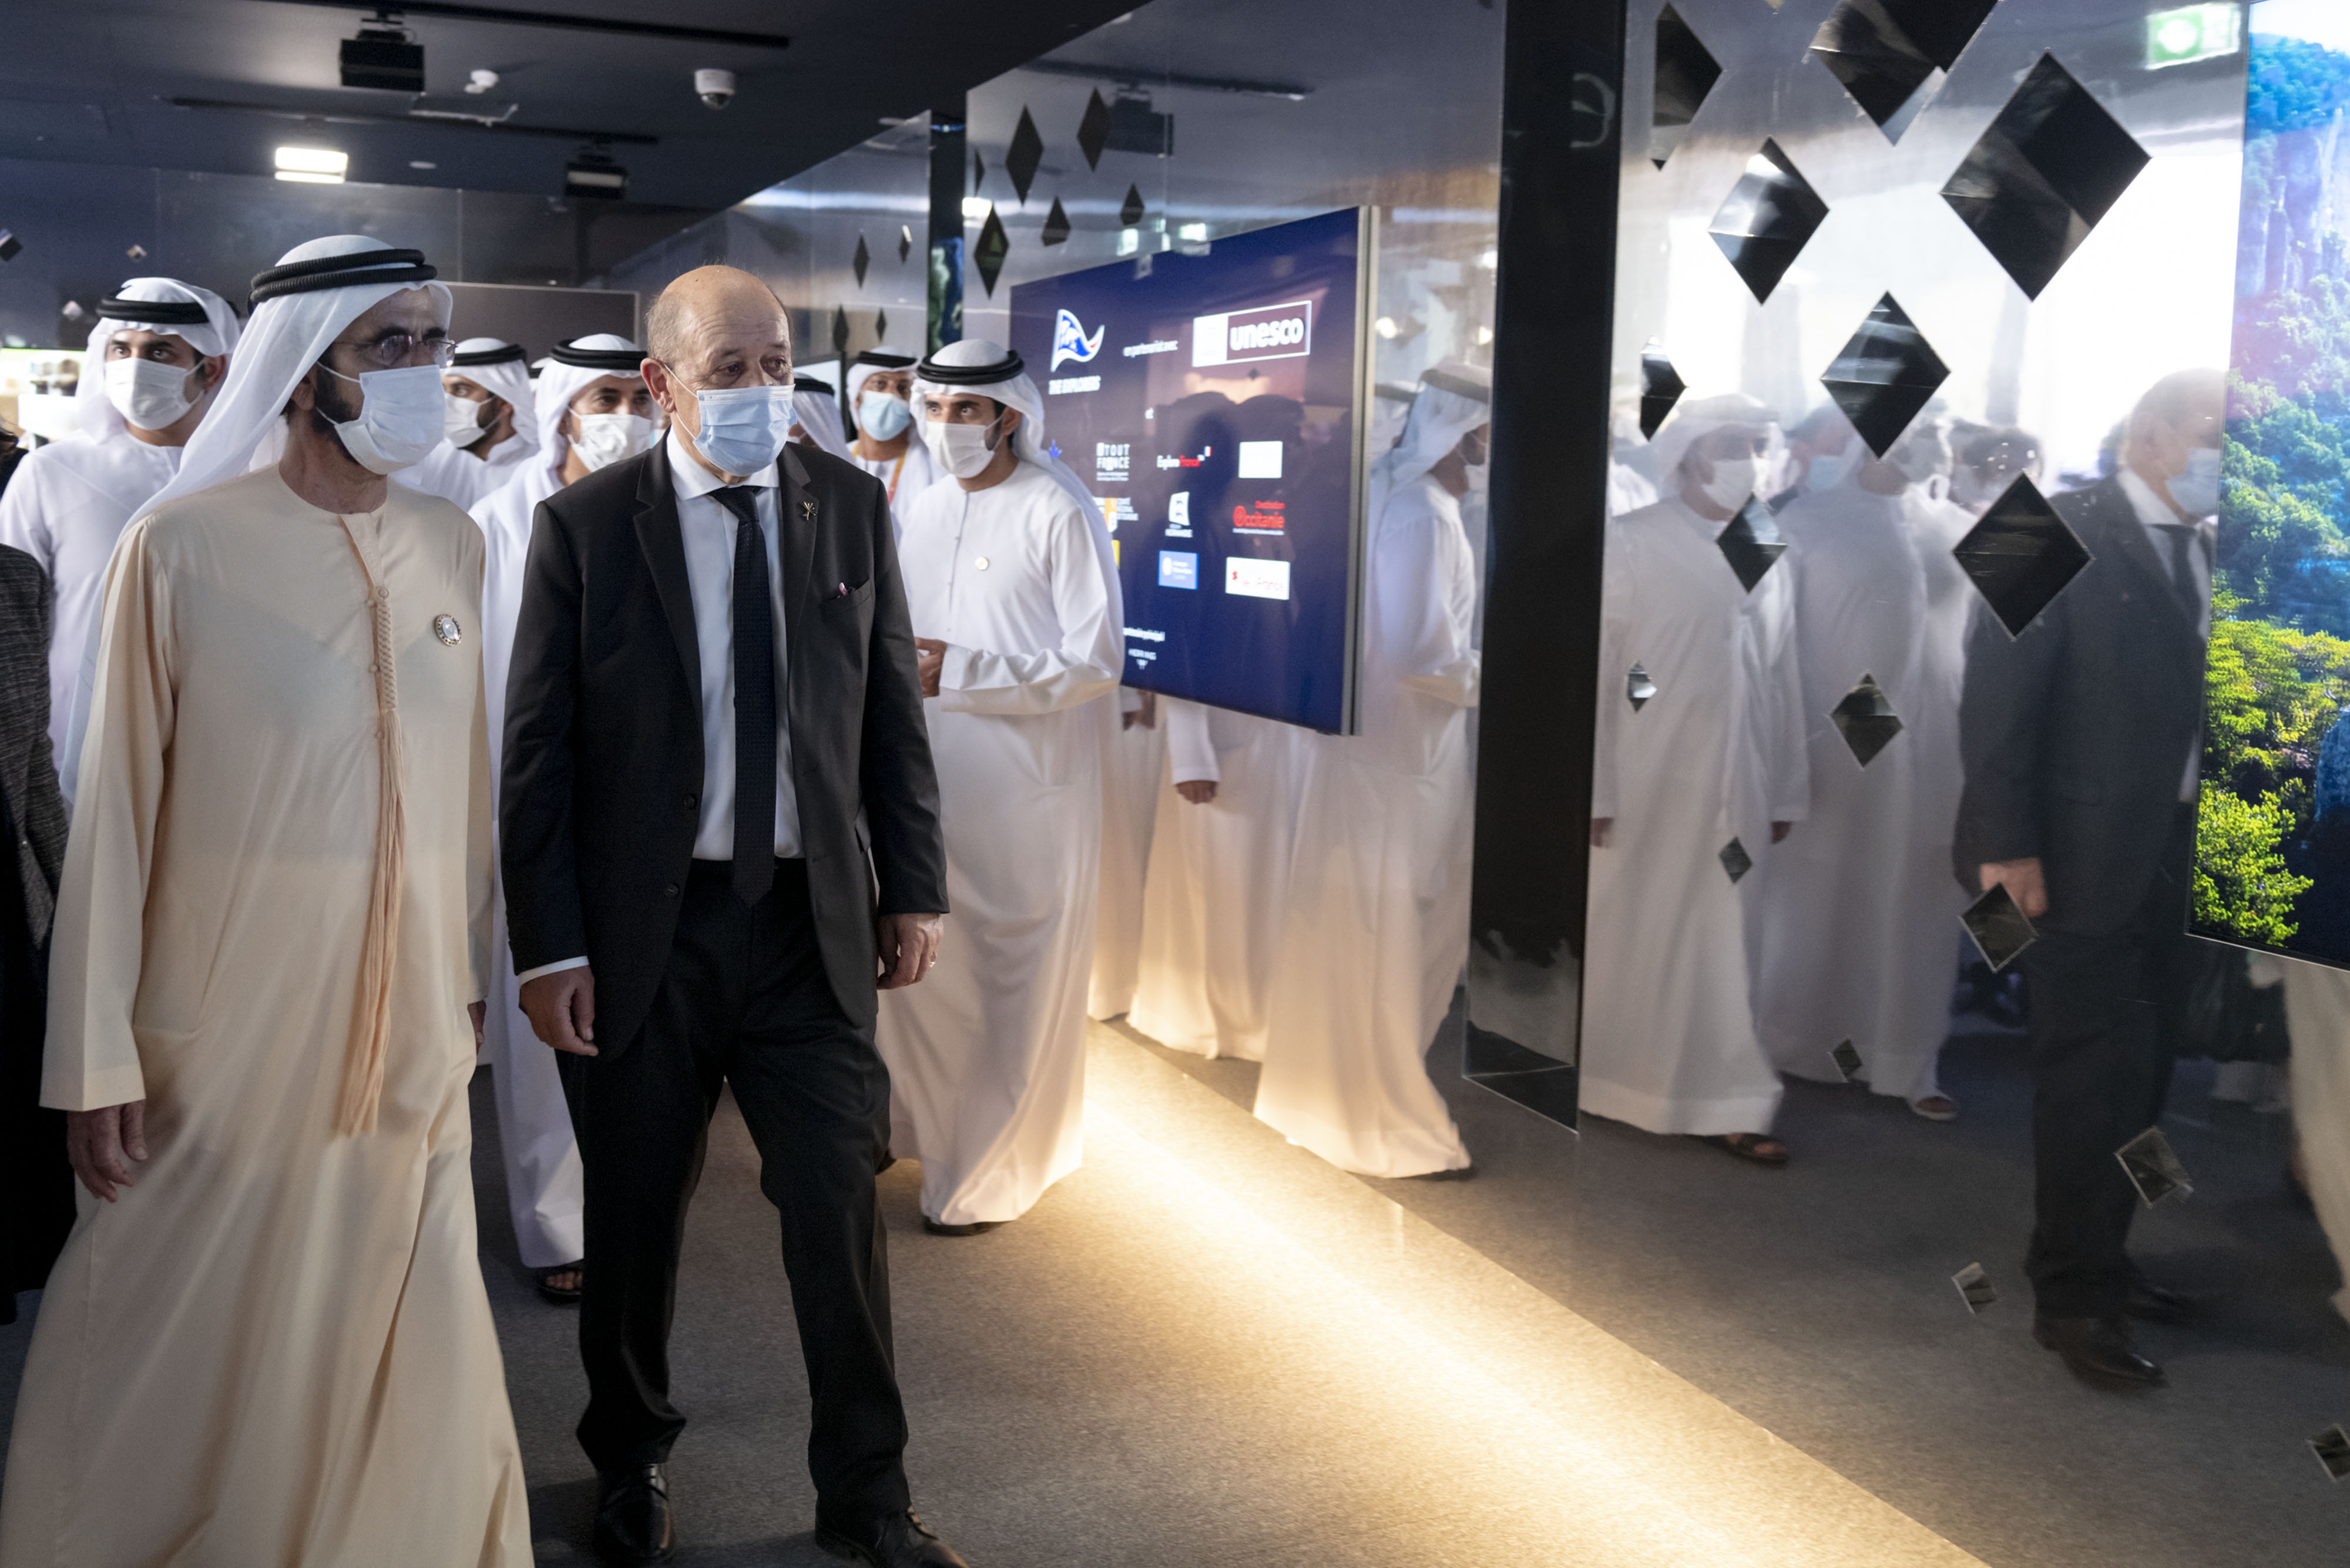 His Highness Sheikh Mohammed bin Rashid Al Maktoum - Mohammed bin Rashid meets with France's Minister of Foreign Affairs during his visit to the French pavilion at Expo 2020 Dubai